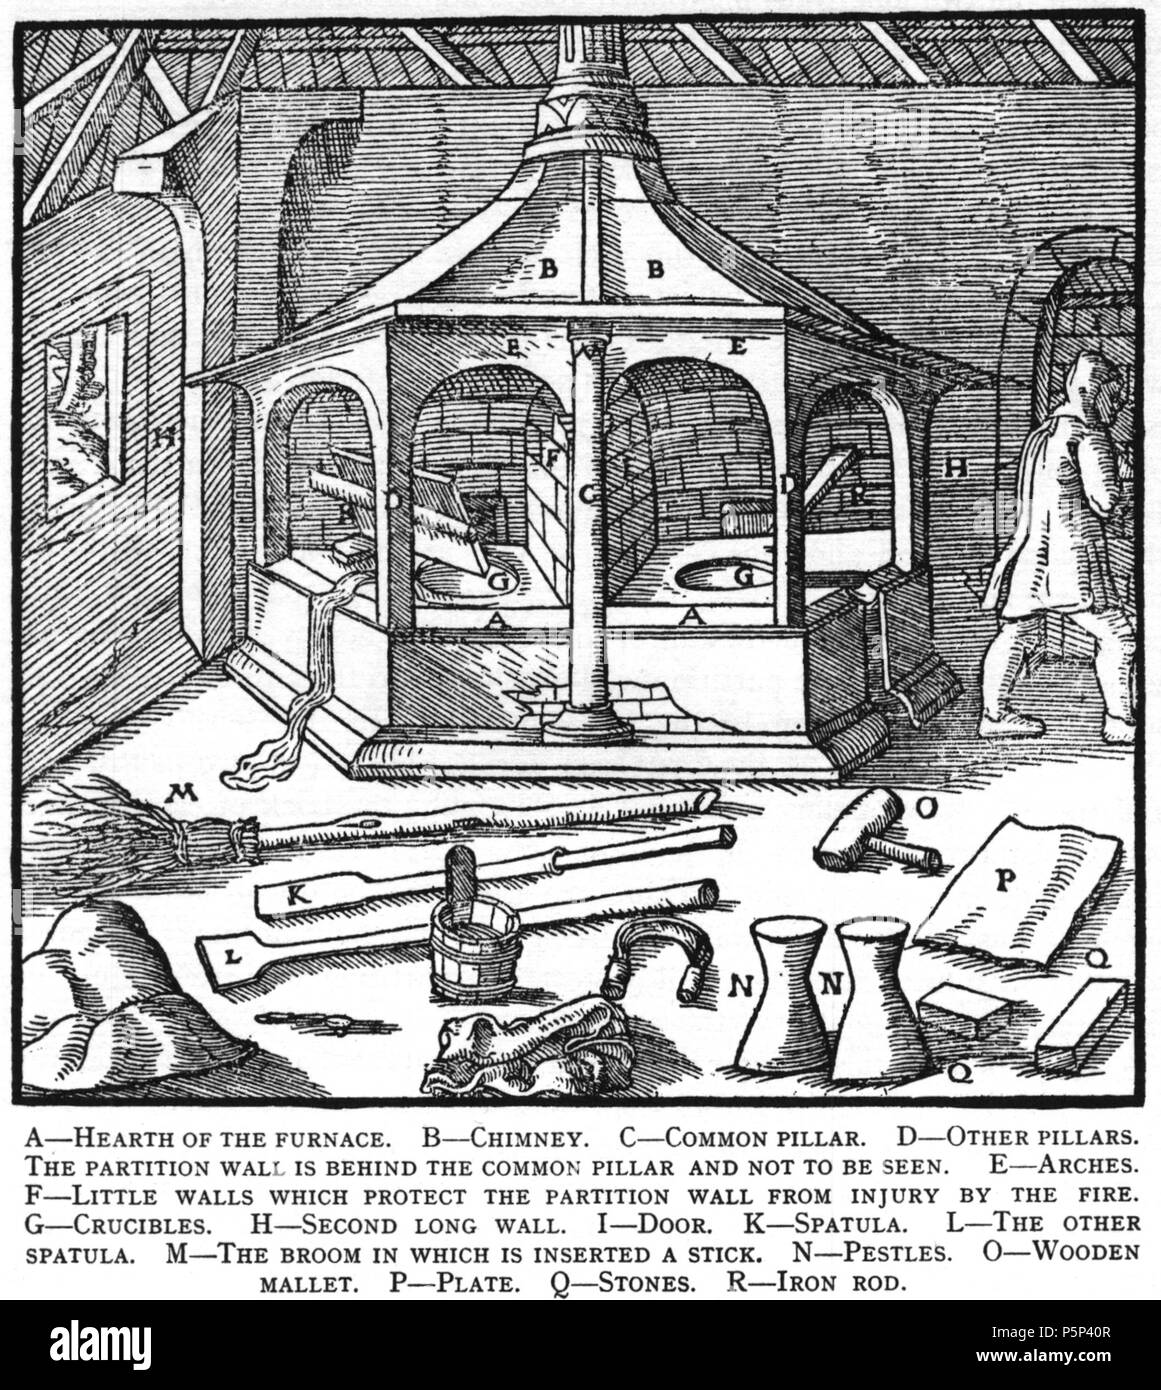 N/A. Woodcut illustration from De re metallica by Georgius Agricola. This is a 300dpi scan from the 1950 Dover edition of the 1913 Hoover translation of the 1556 reference. The Dover edition has slightly smaller size prints than the Hoover (which is a rare book). The woodcuts were recreated for the 1913 printing. Filenames (except for the title page) indicate the chapter (2, 3, 5, etc.) followed by the sequential number of the illustration. 2 May 2005, 06:55:44. TCO (talk) 222 Book11-15 - Stock Image